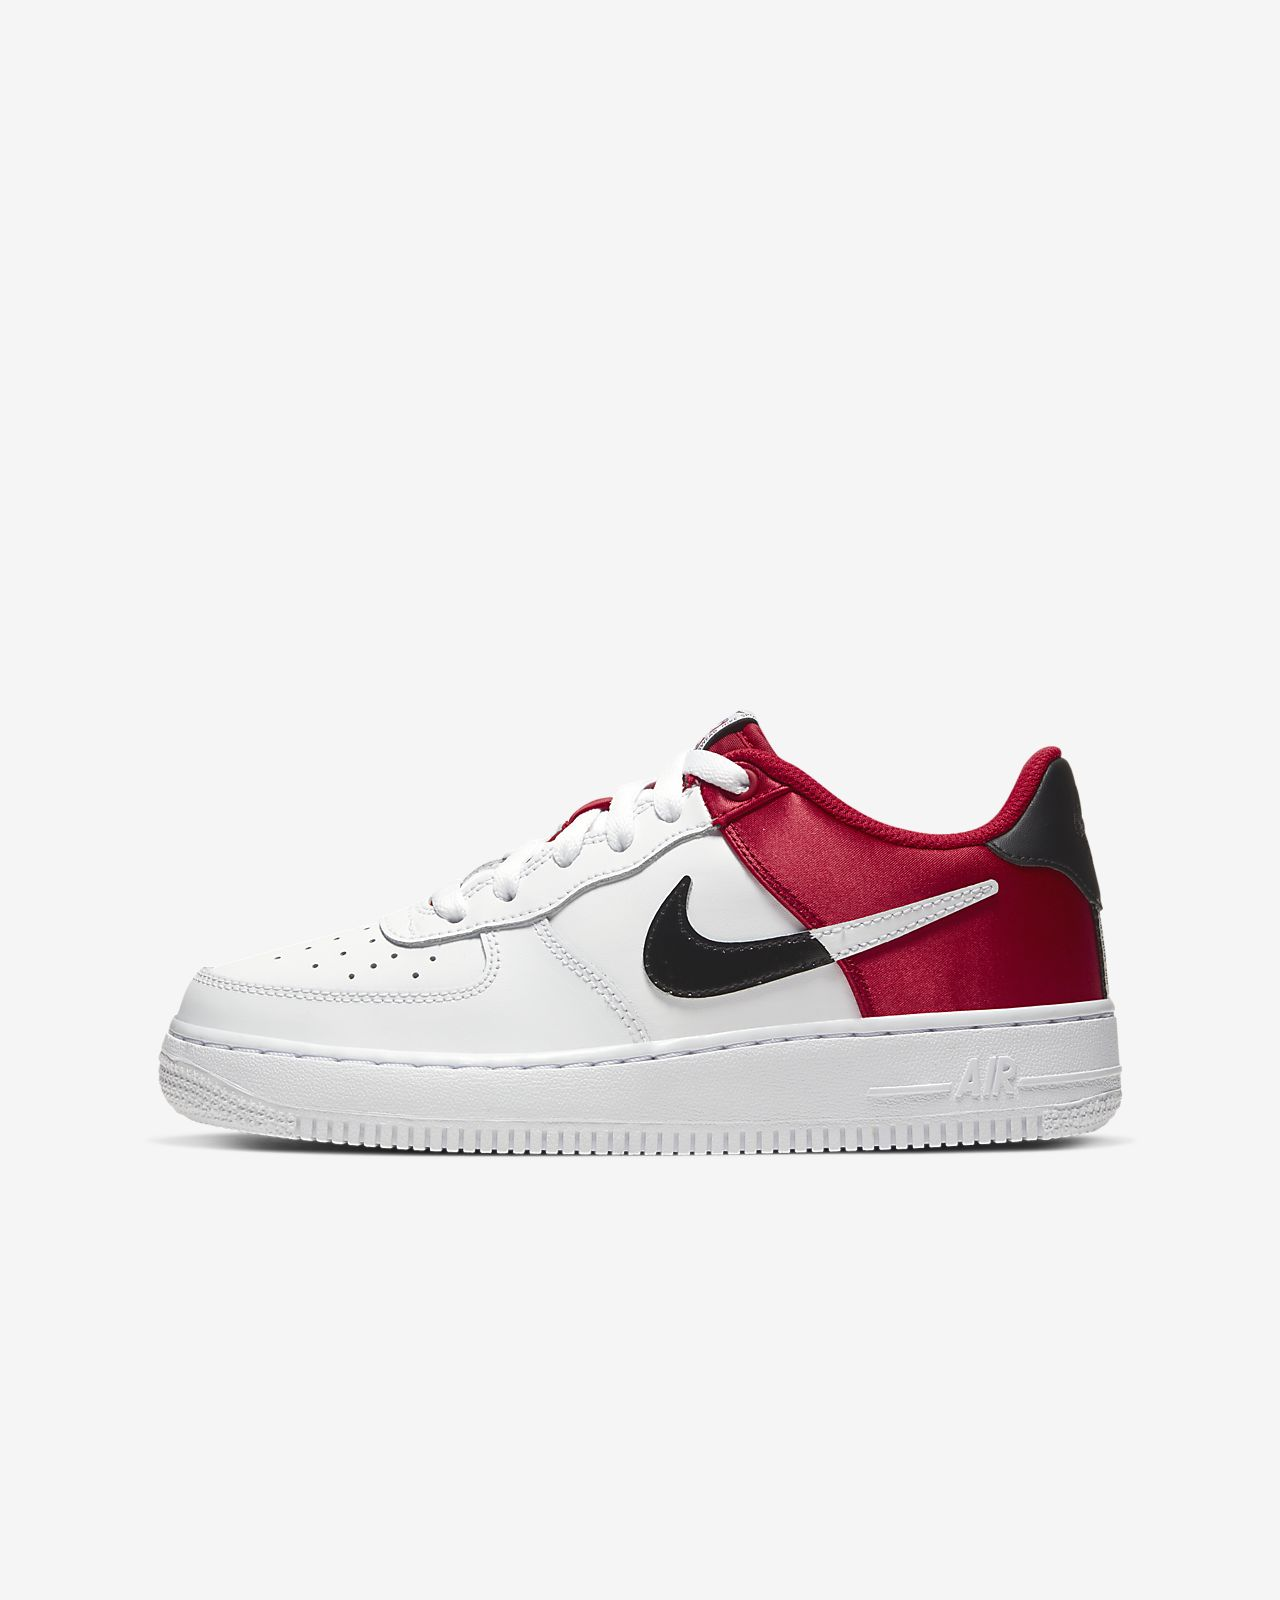 NIKE AIR FORCE 1 ROUGE: : Chaussures et Sacs